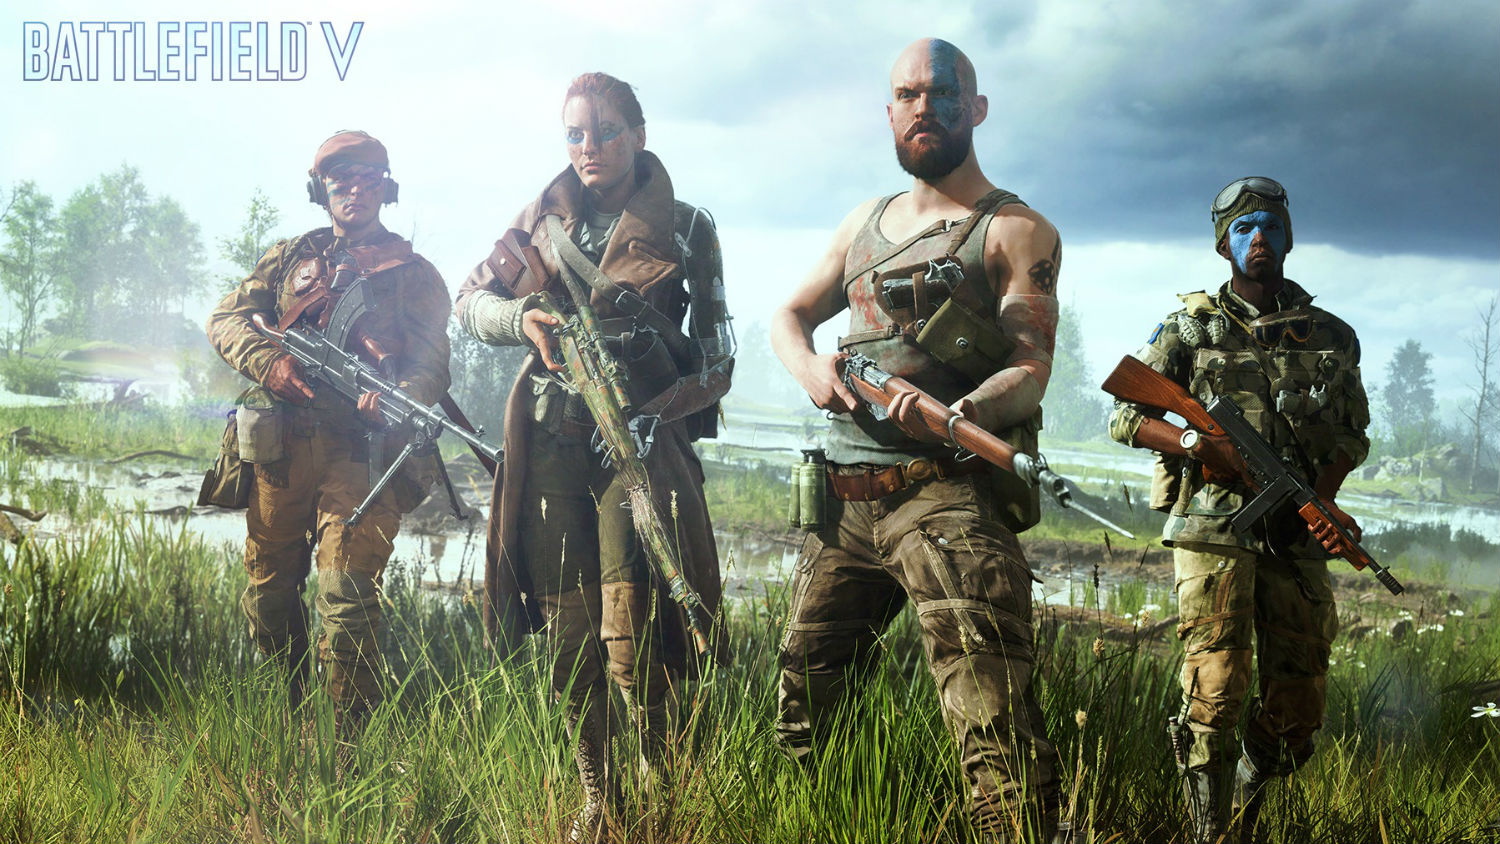 EA informally reveals Battlefield V's Airborne mode screenshot